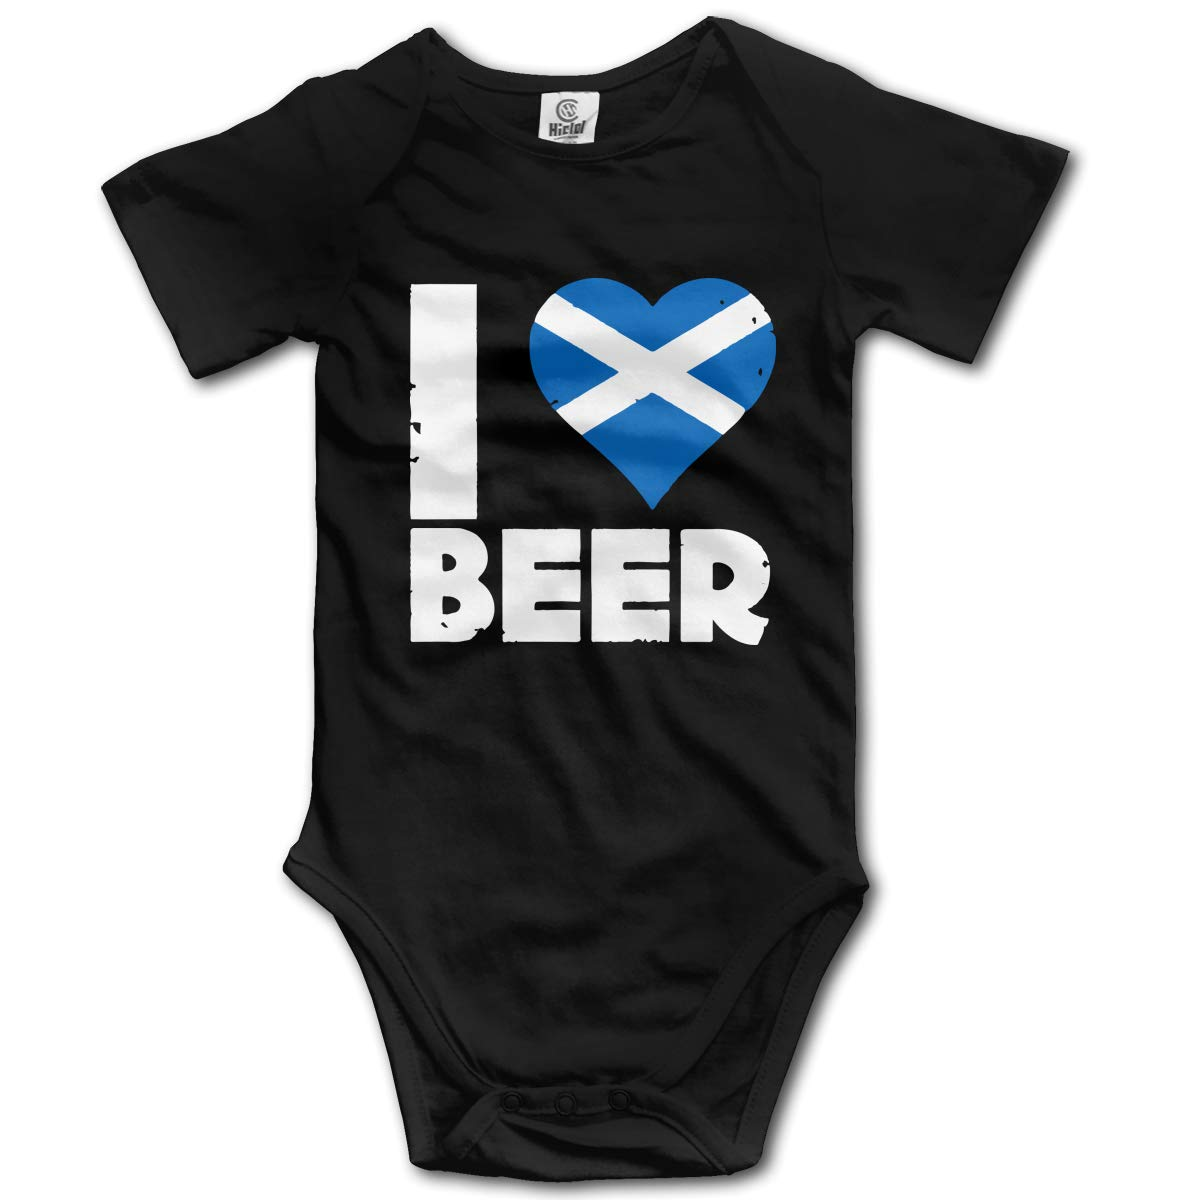 Q98BABY Infant Babys Short Sleeve Climb Jumpsuit I Heart Scottish Beer Personalized Round Neck Baby Clothes